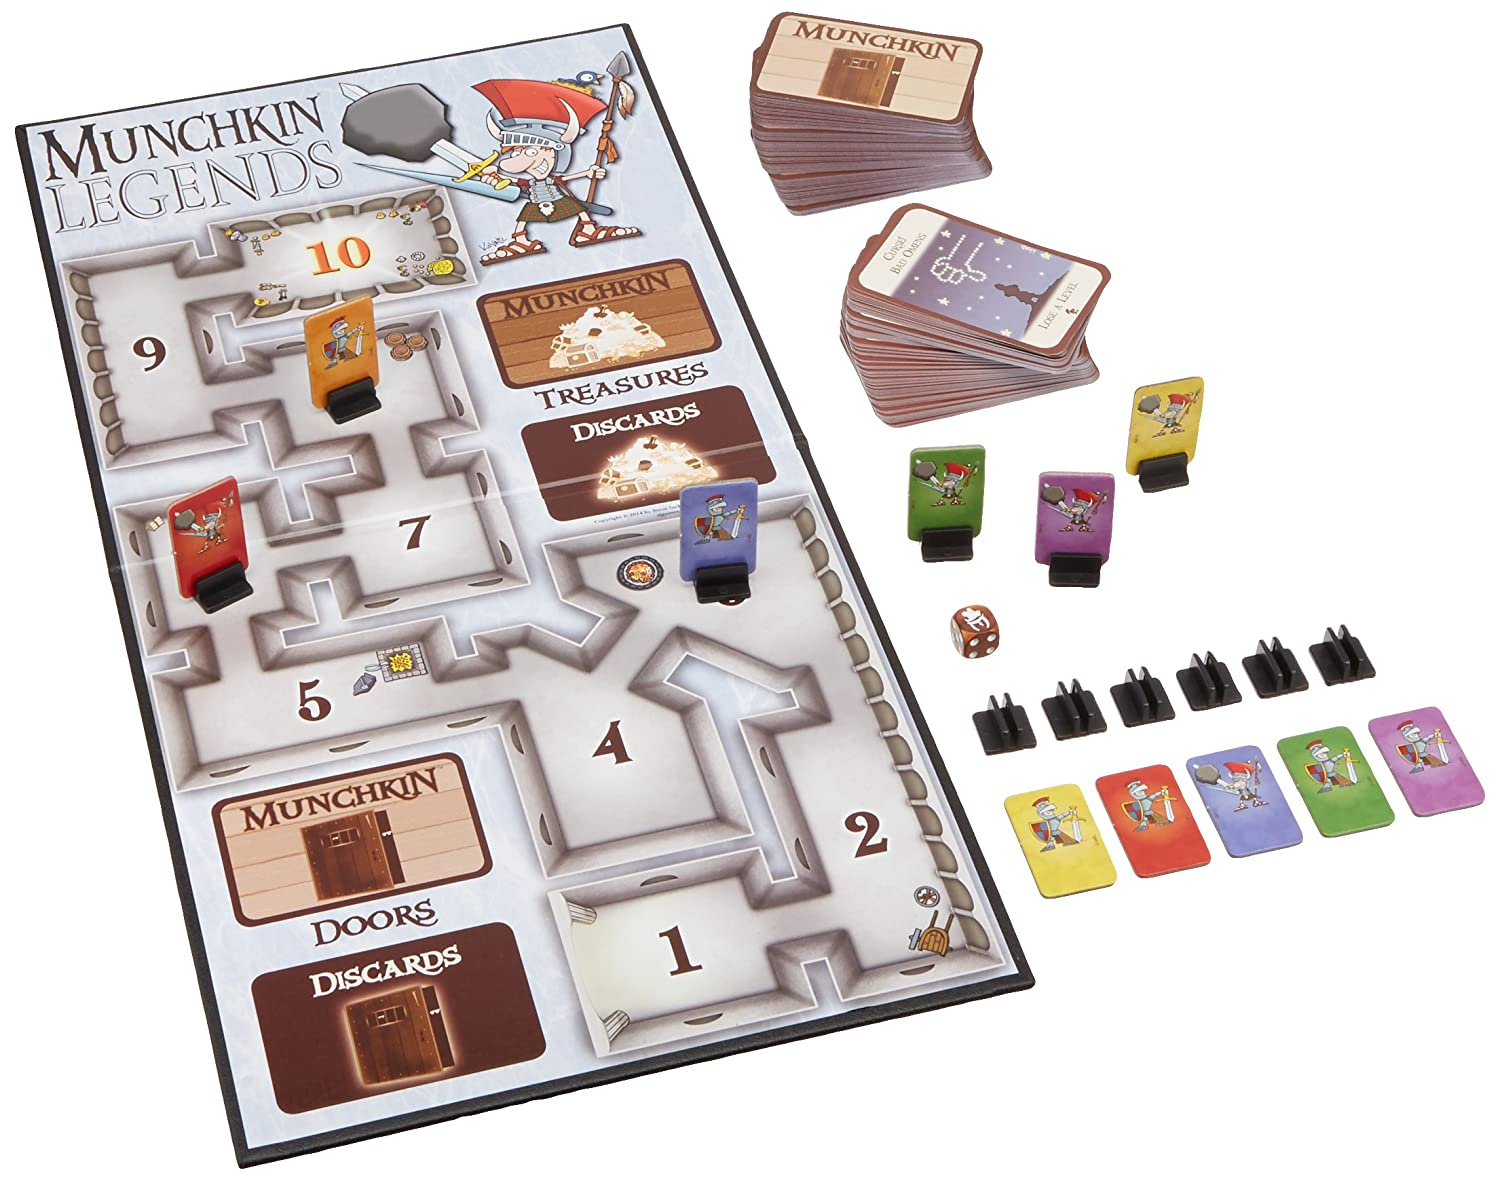 Amazon.com: Munchkin Legends Deluxe: Toys & Games